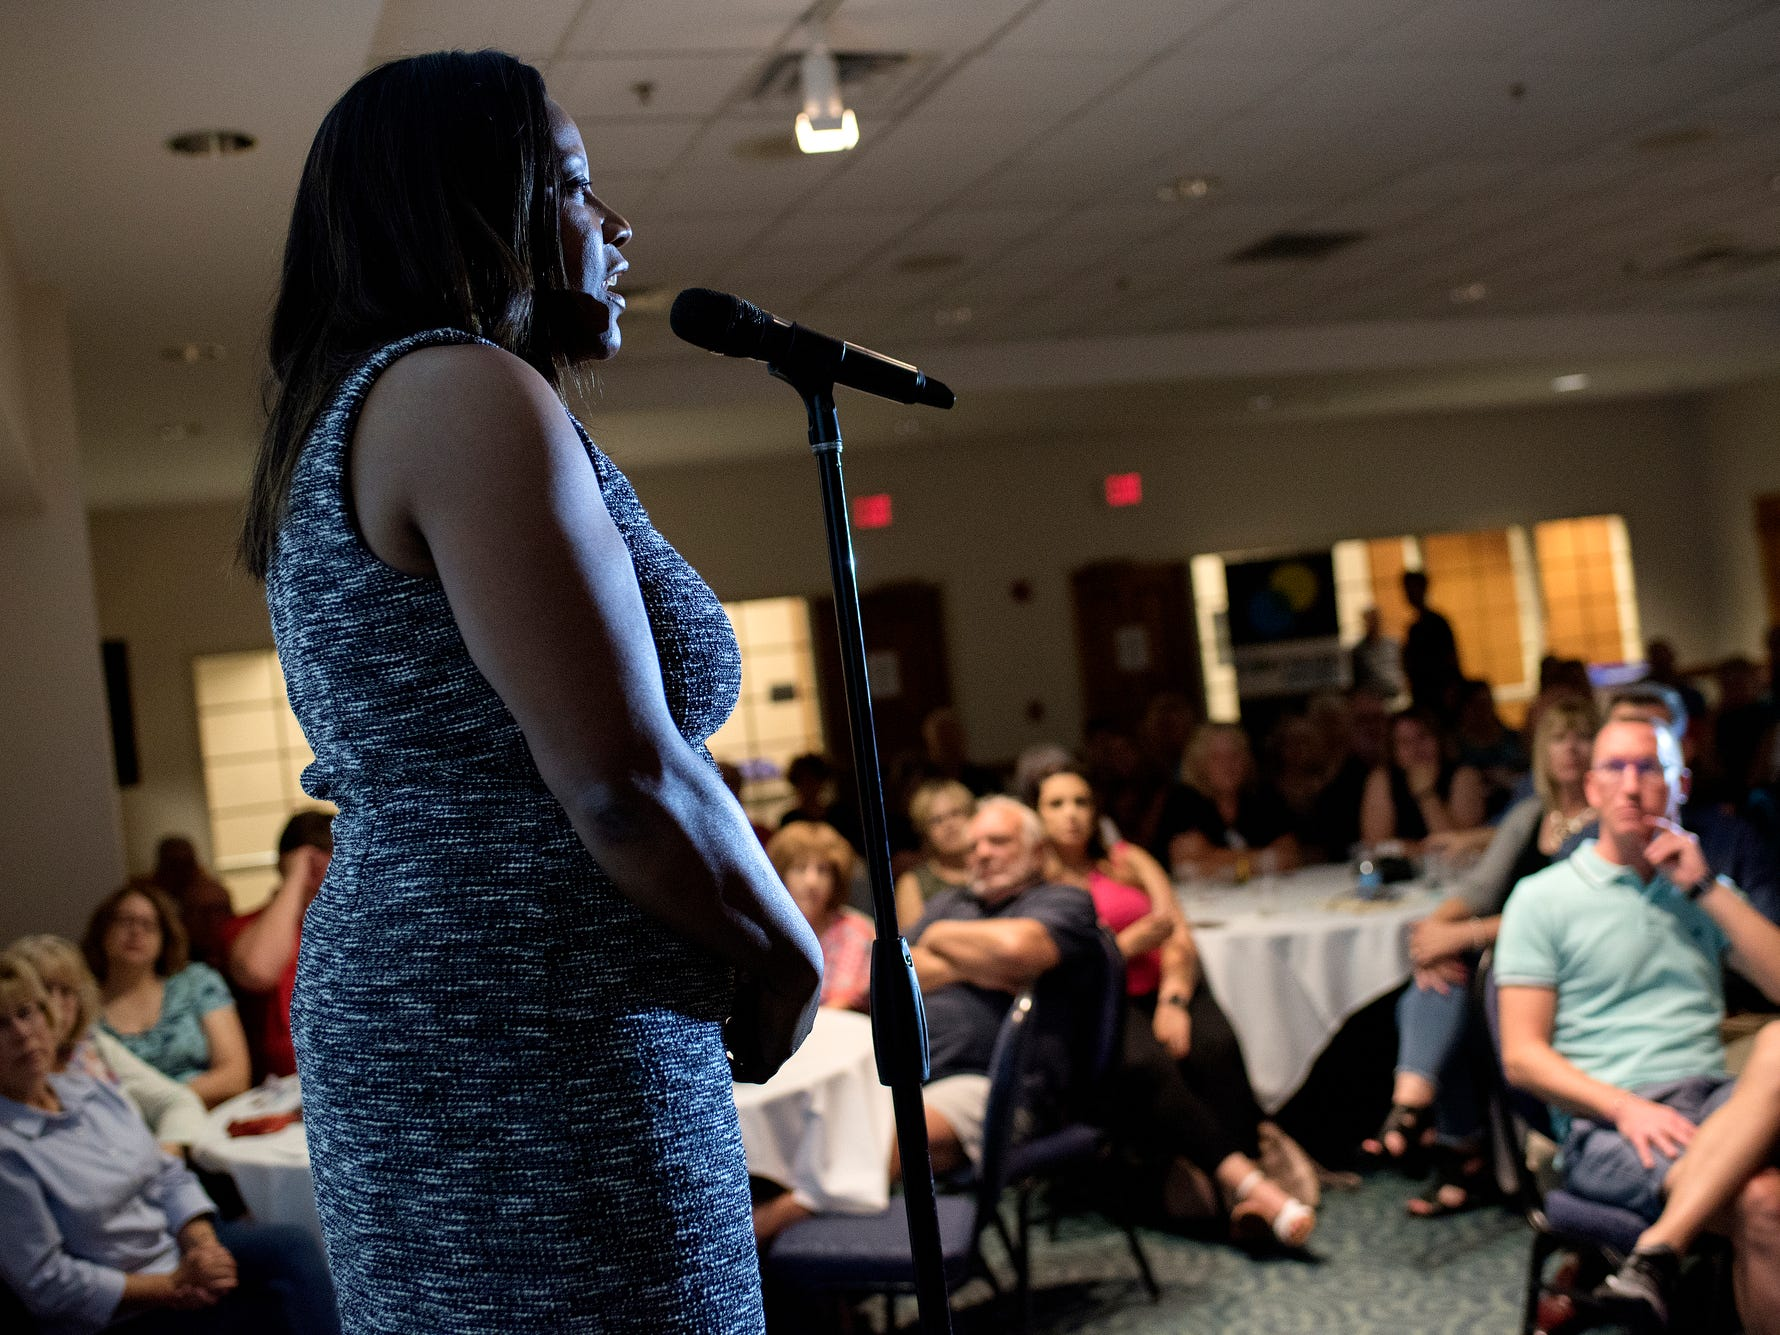 Angela Hall speaks during the Lansing Storytellers Project: 'Are We There Yet?' event on Tuesday, Sept. 18, 2018, at the Hannah Community Center in East Lansing.